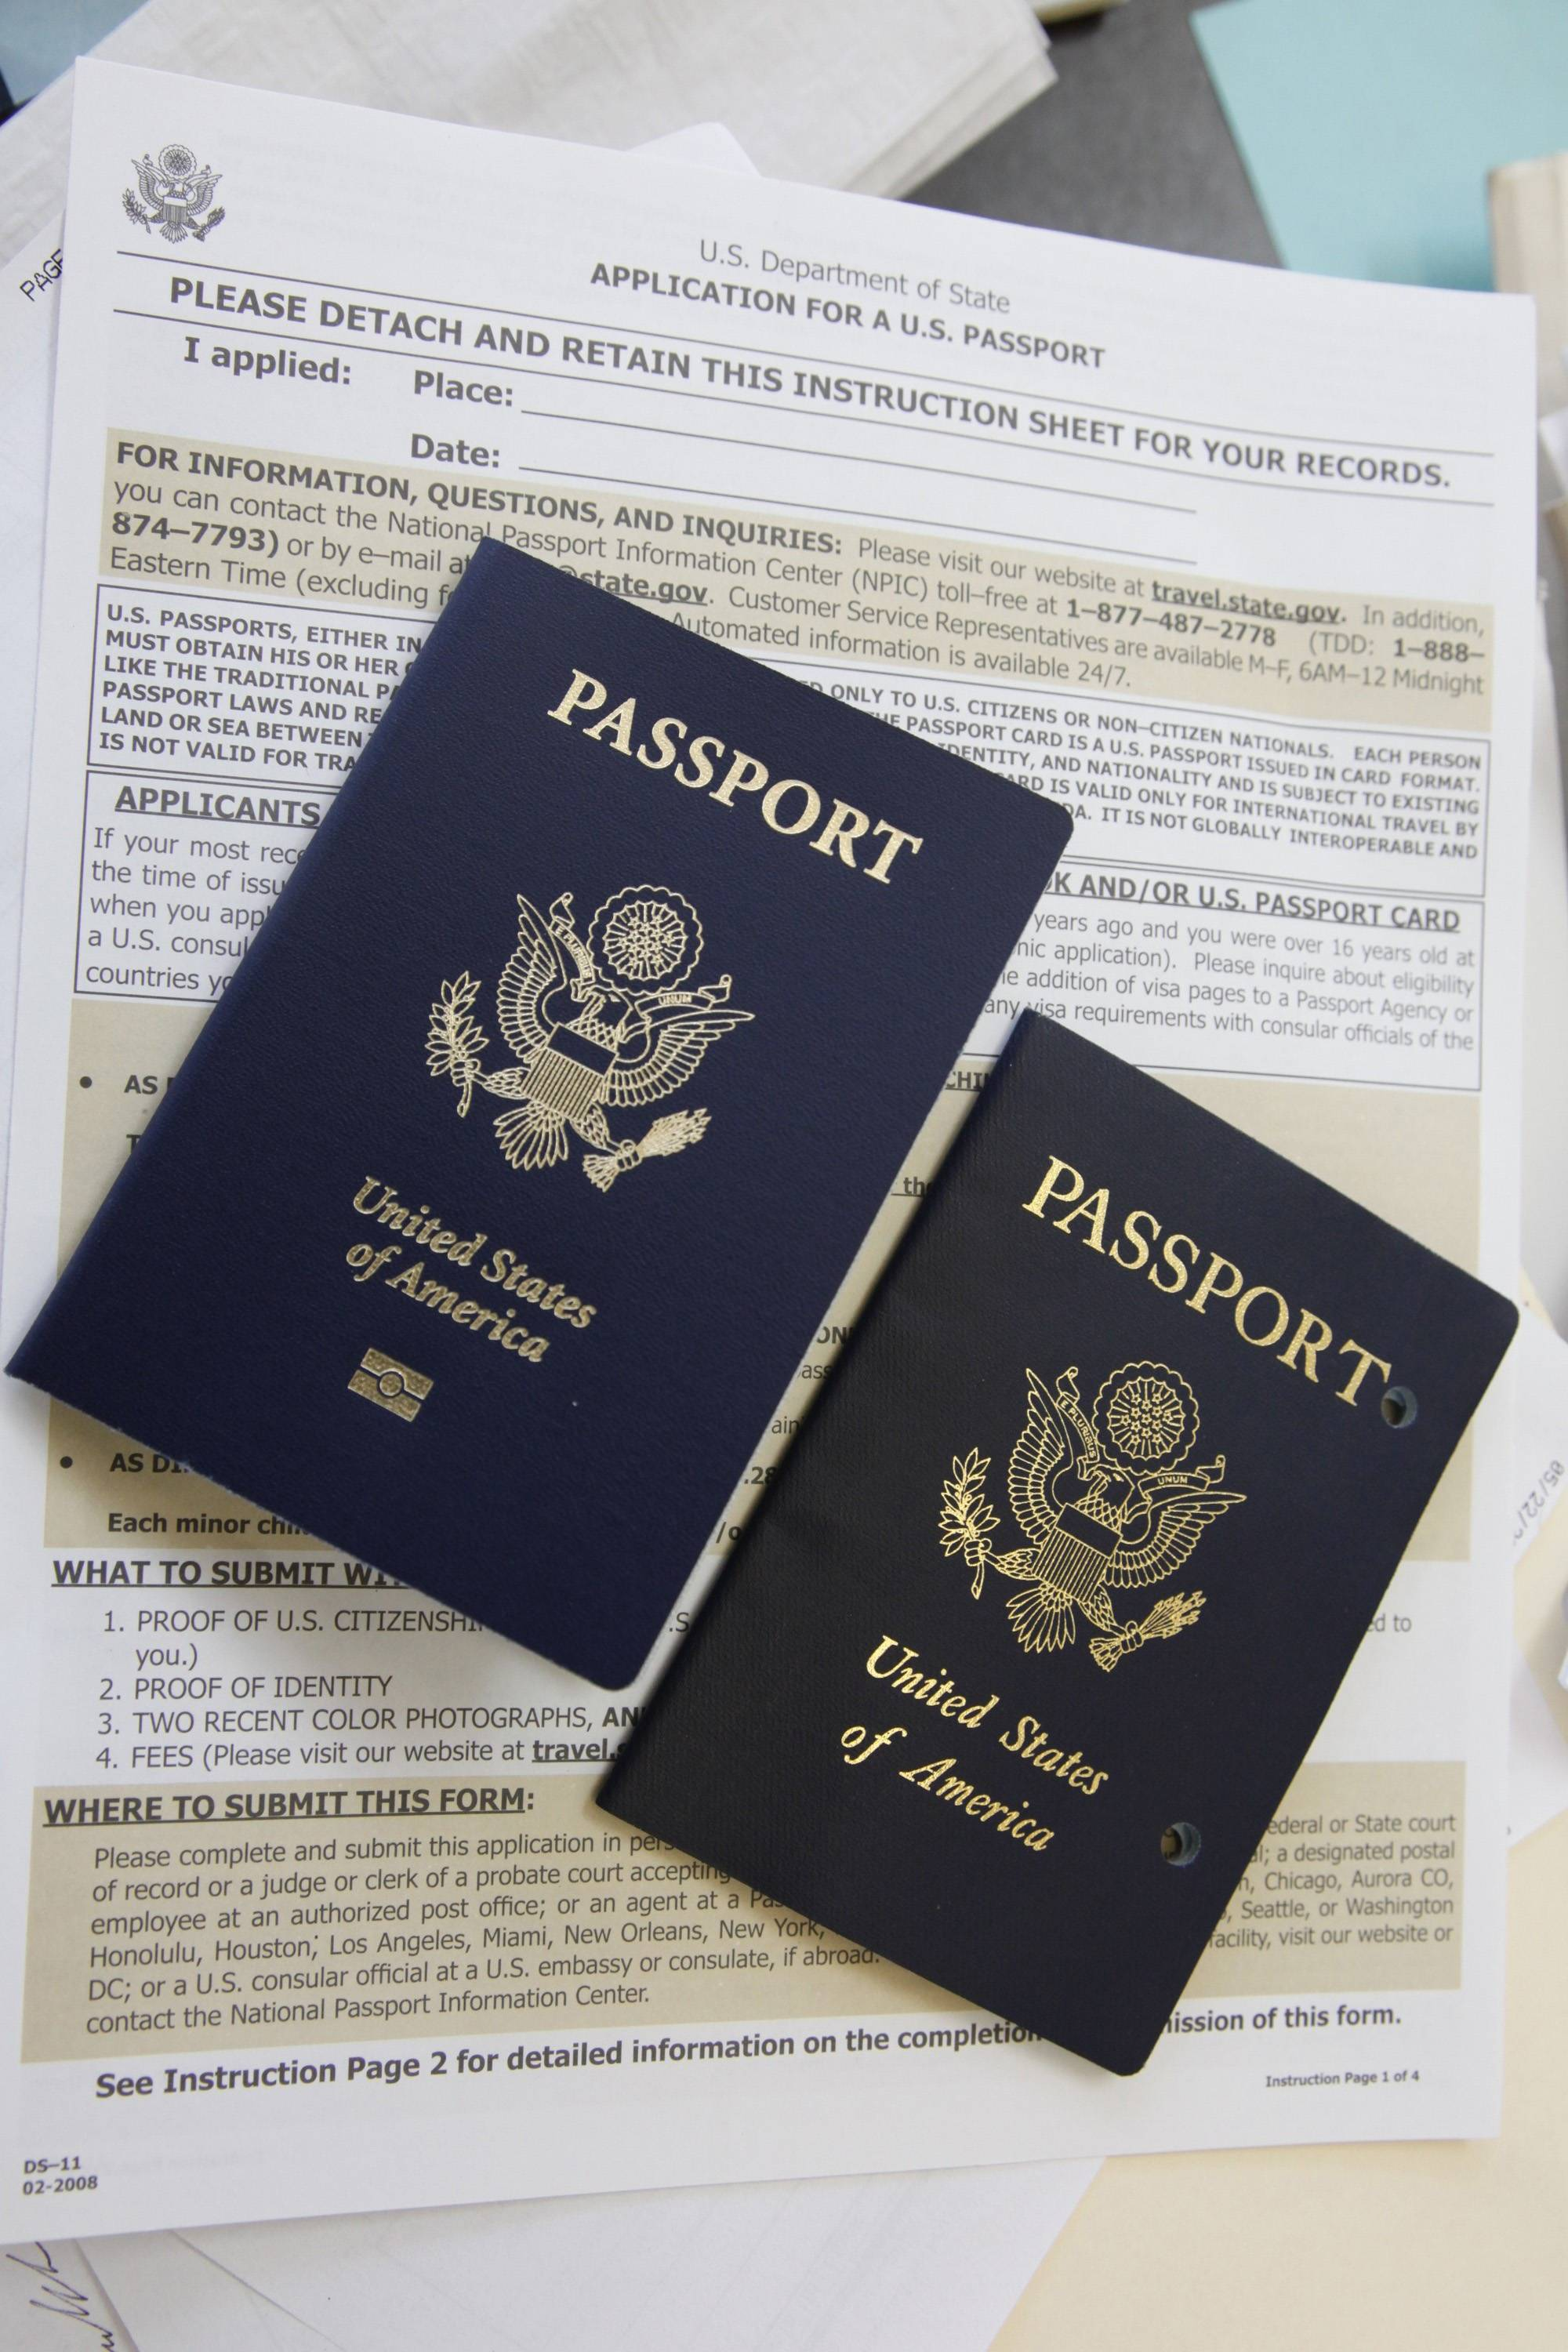 The State Department's global database for issuing travel documents has crashed, resulting in major delays for potentially millions of people around the world waiting for U.S. passports and visas, officials said Wednesday.